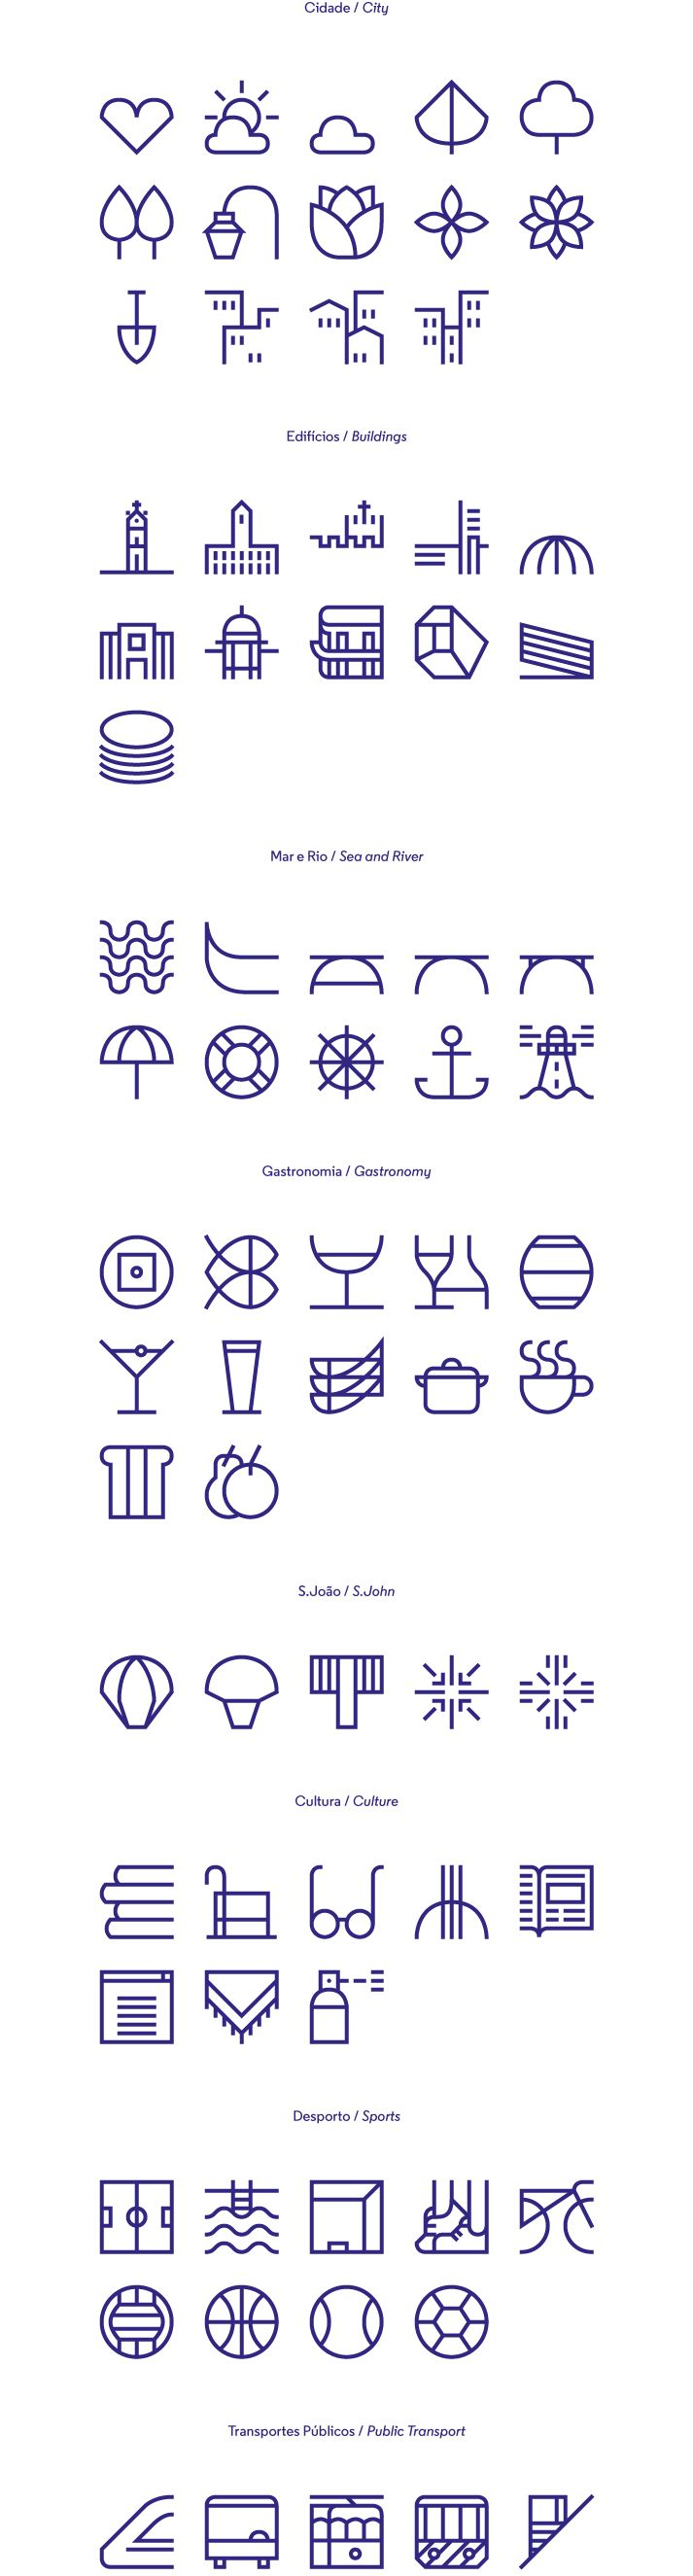 Porto icon set design